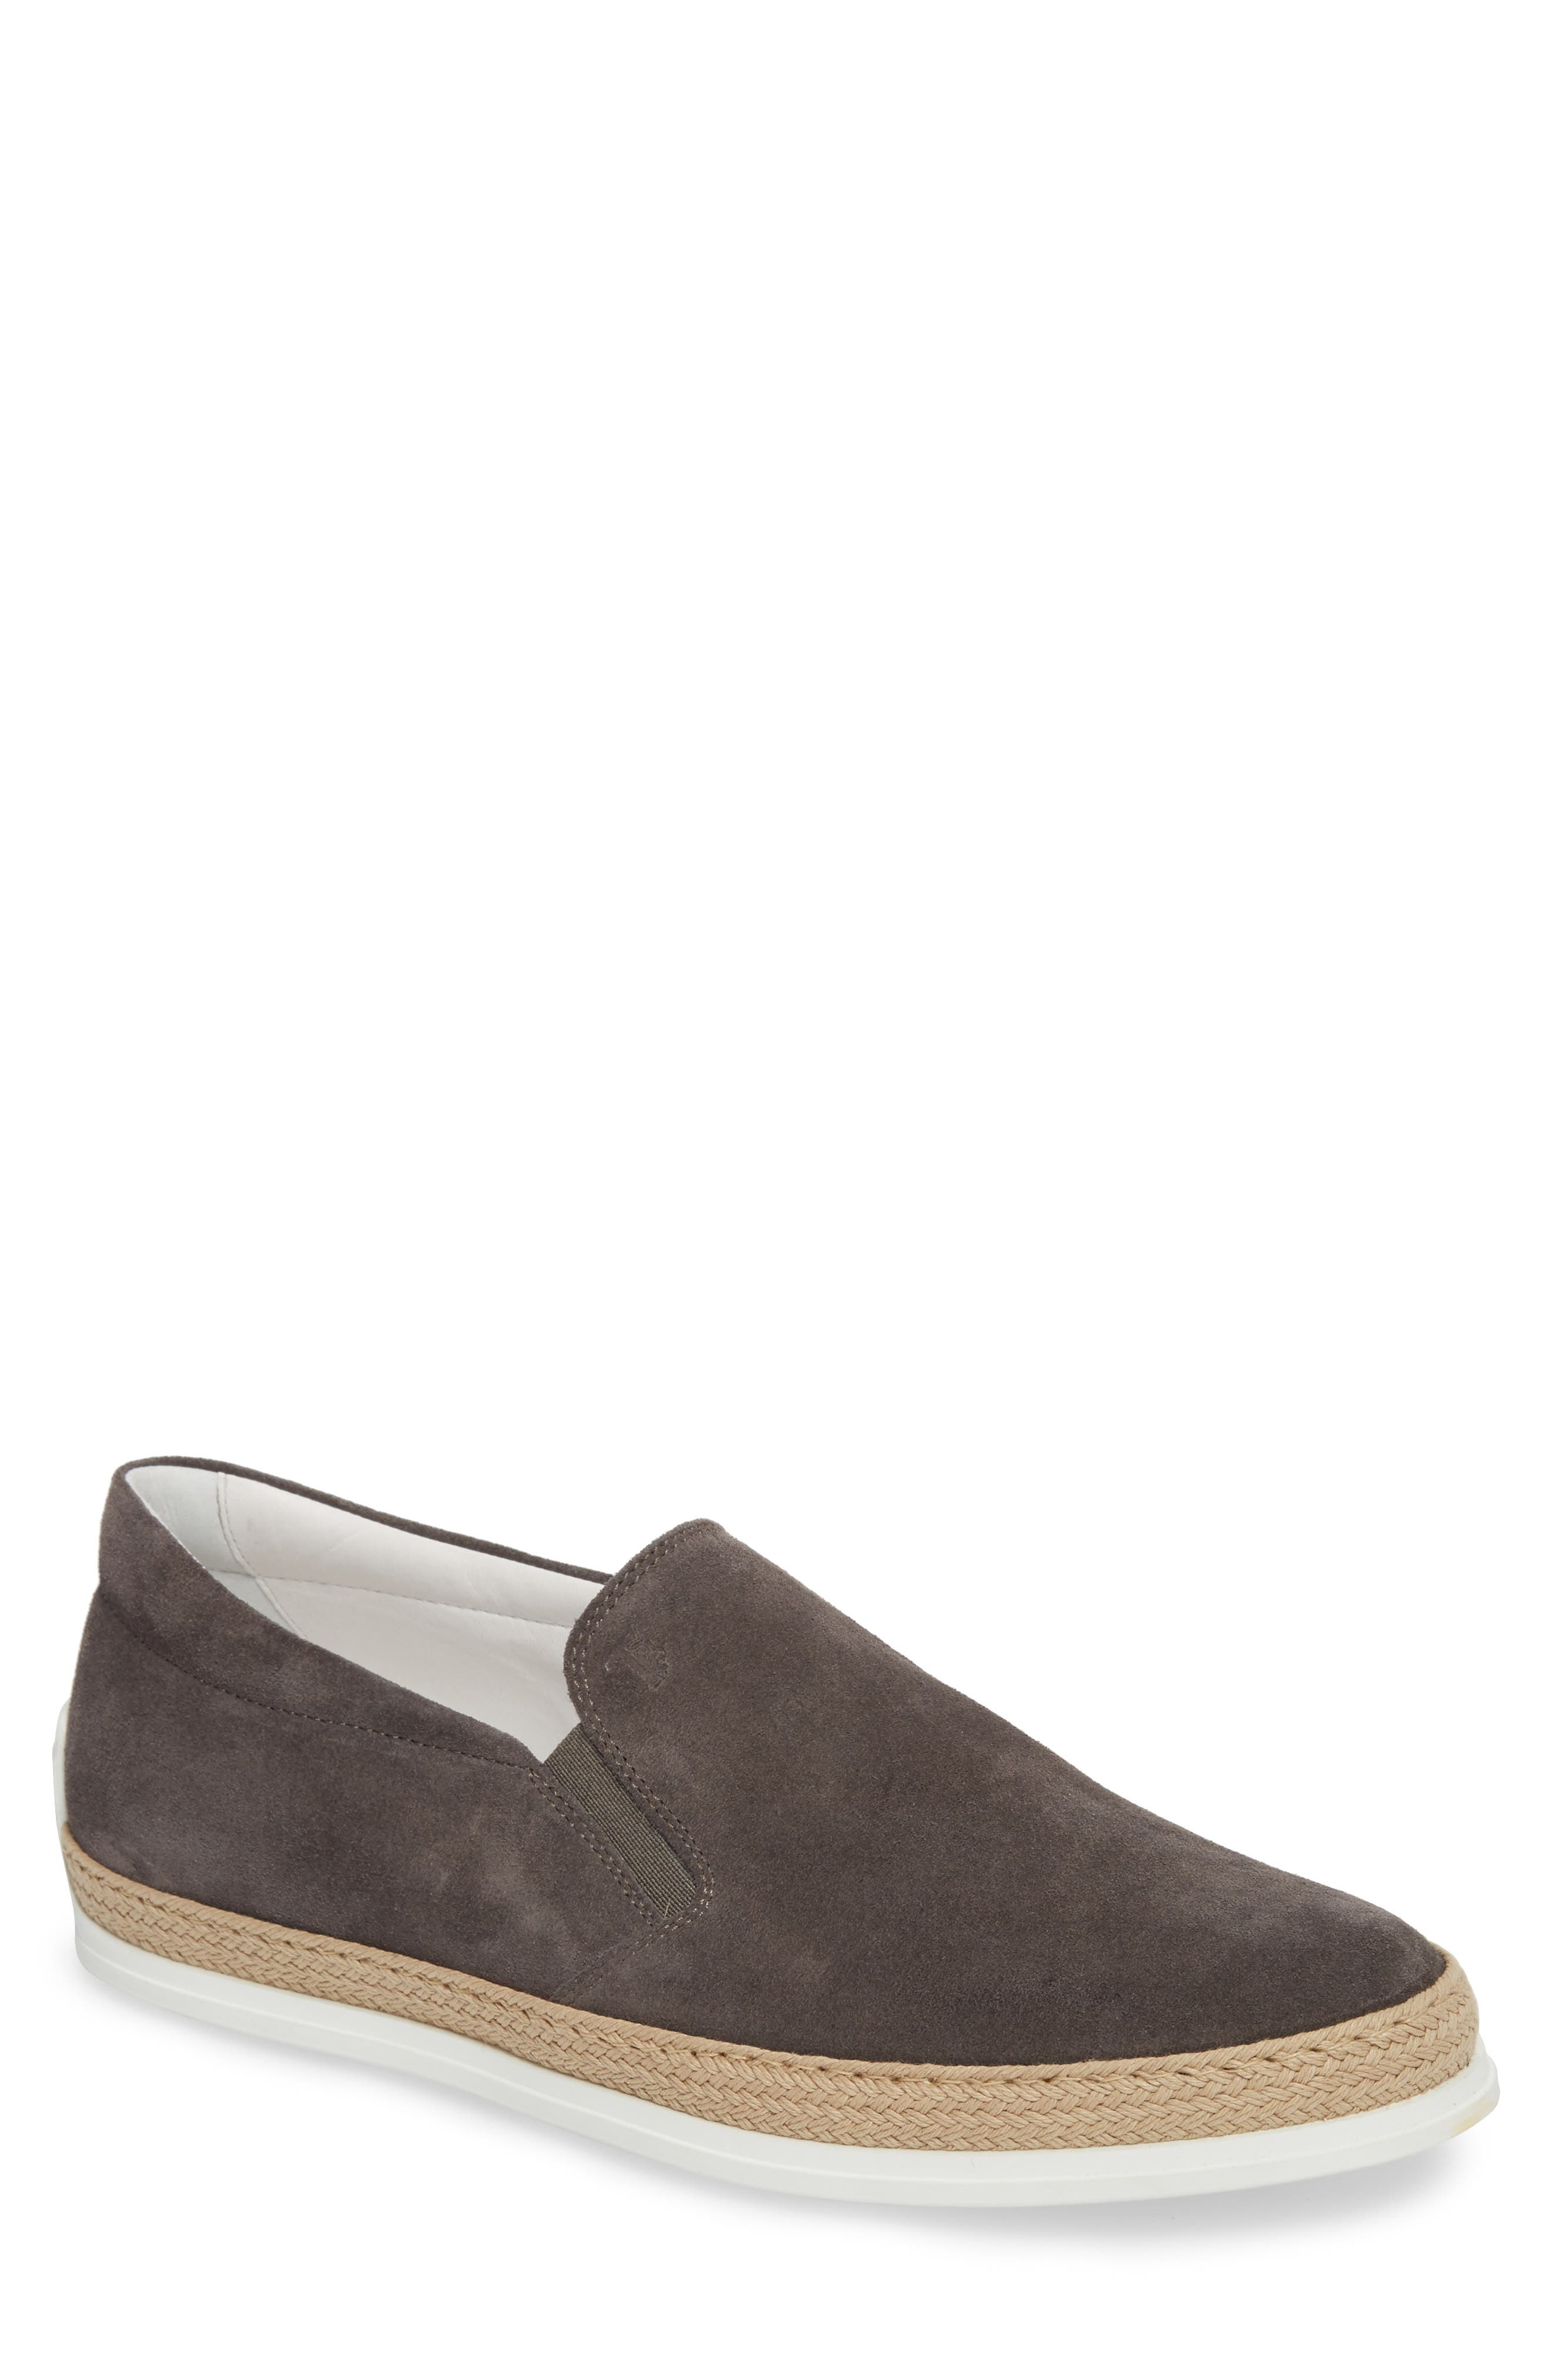 Espadrille Slip-On,                             Main thumbnail 1, color,                             030